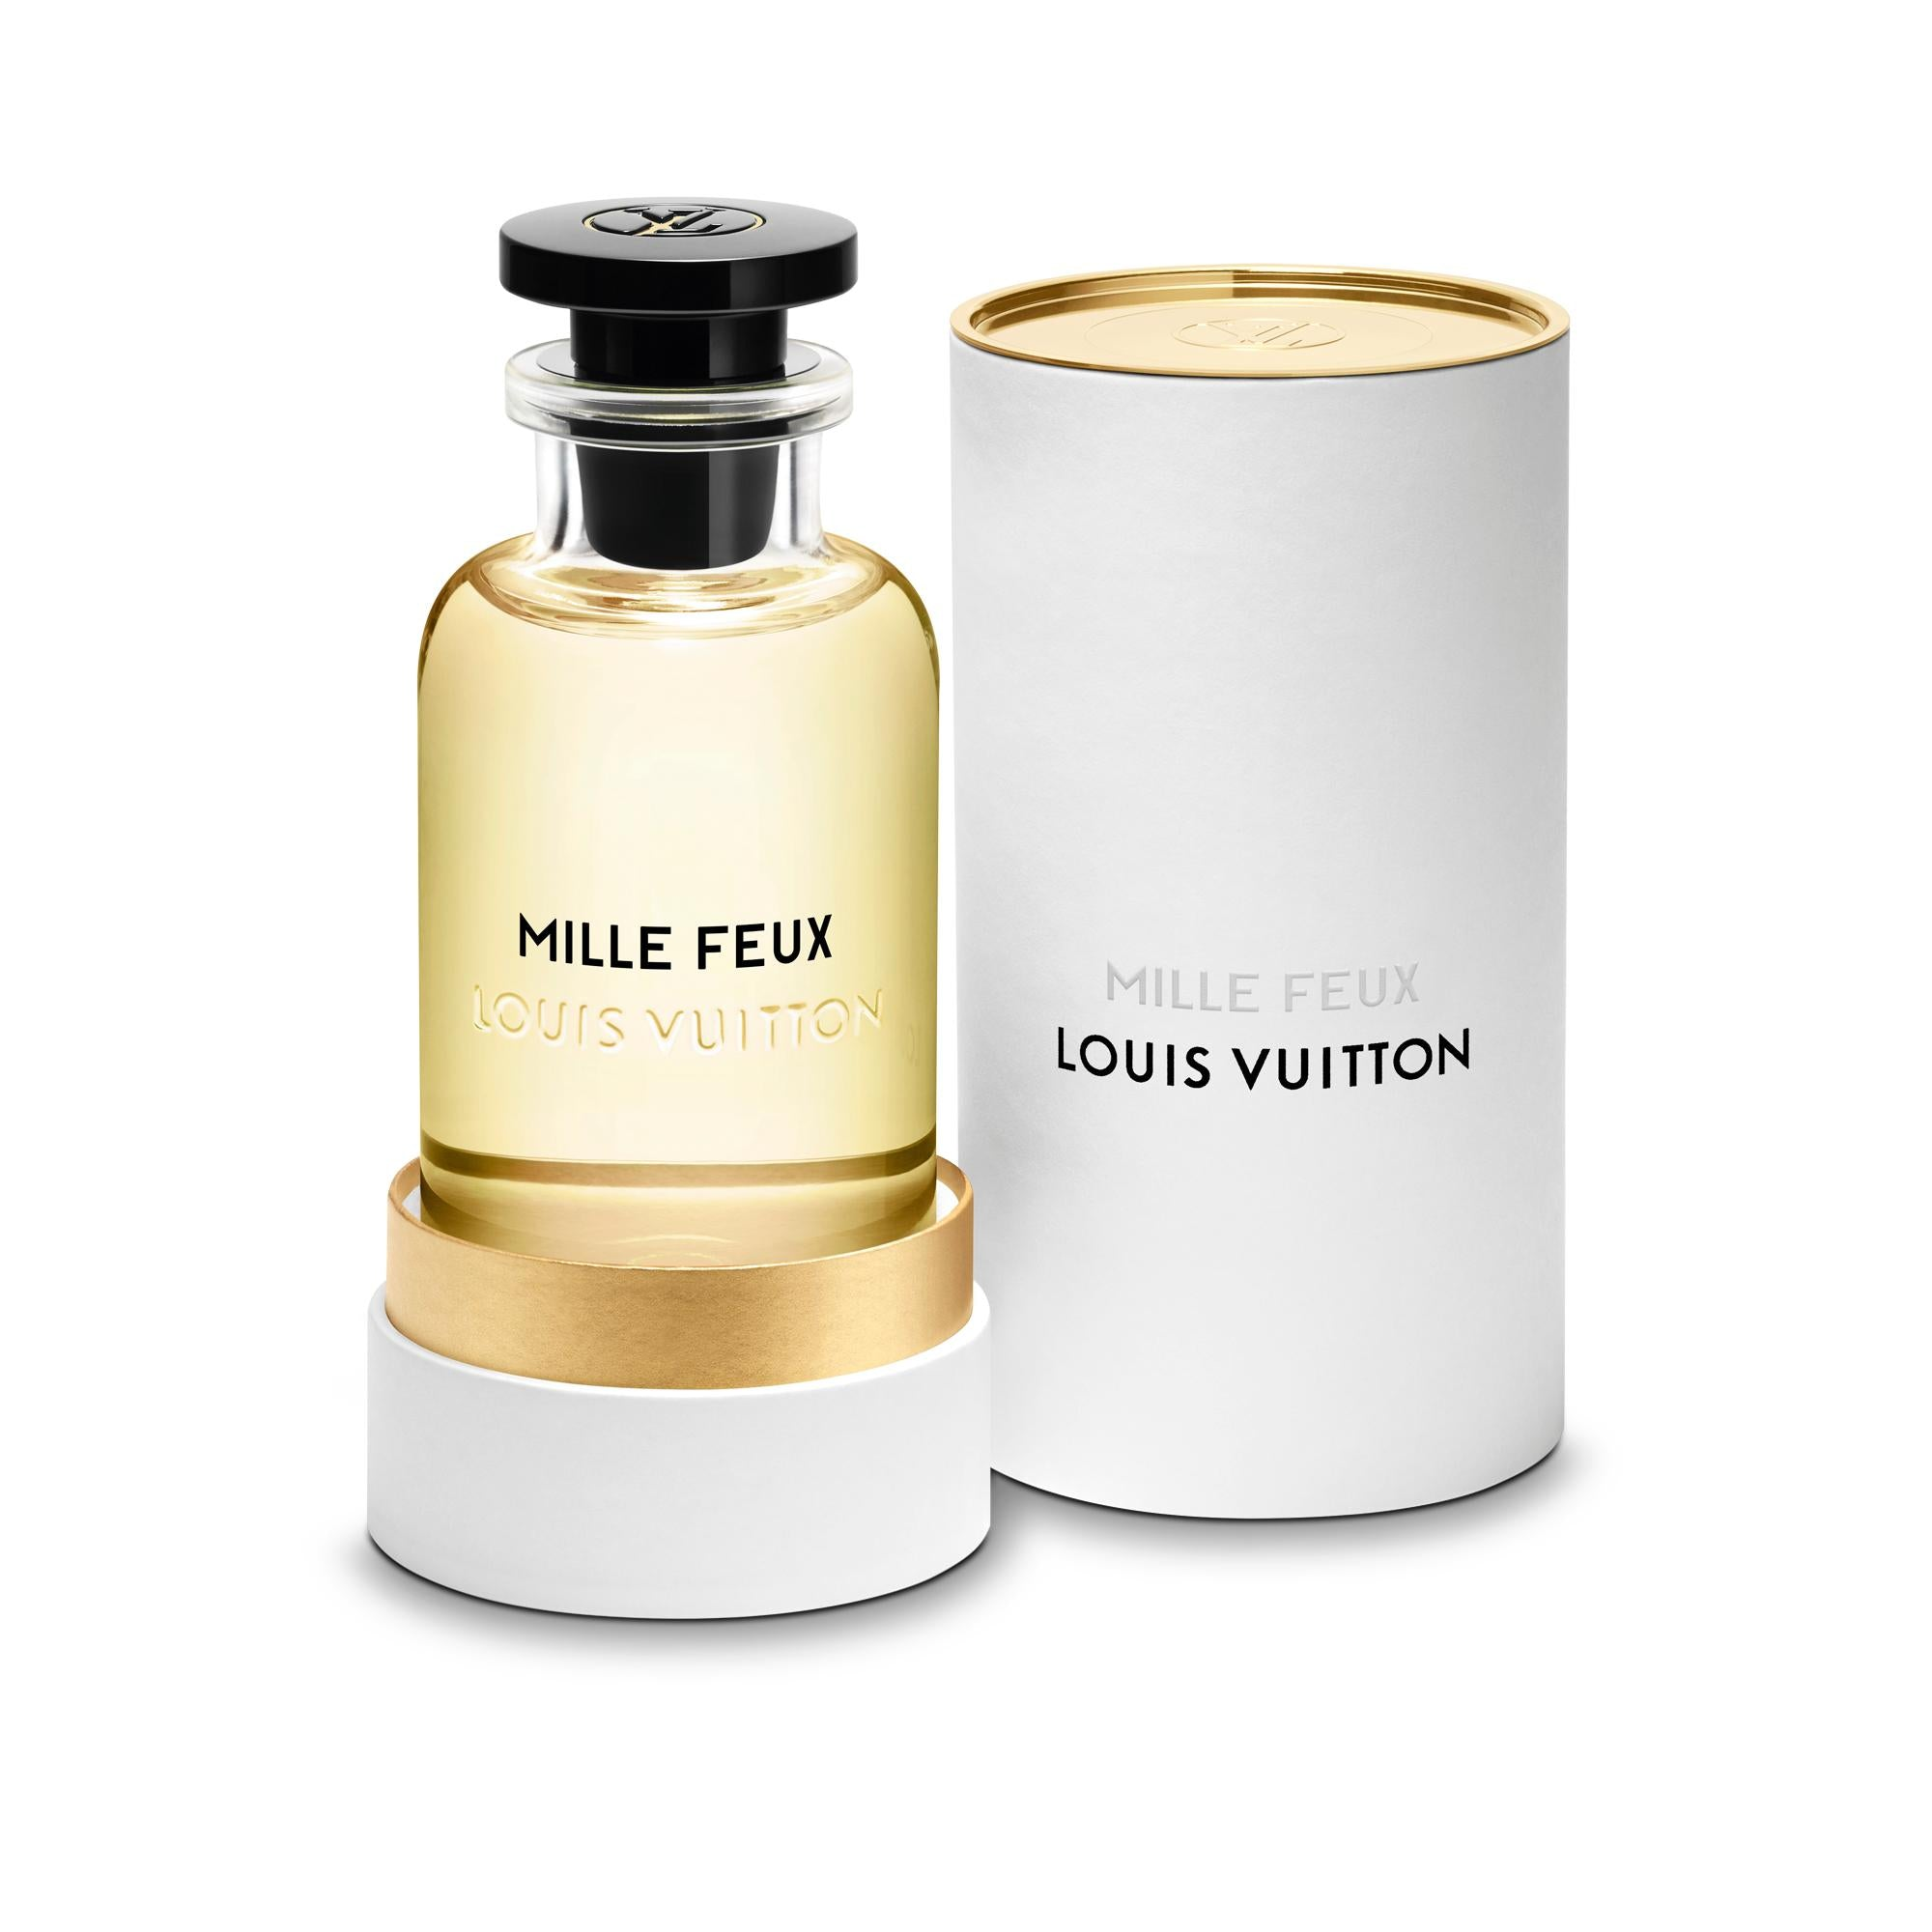 Perfume oil inspired by Mille Feux